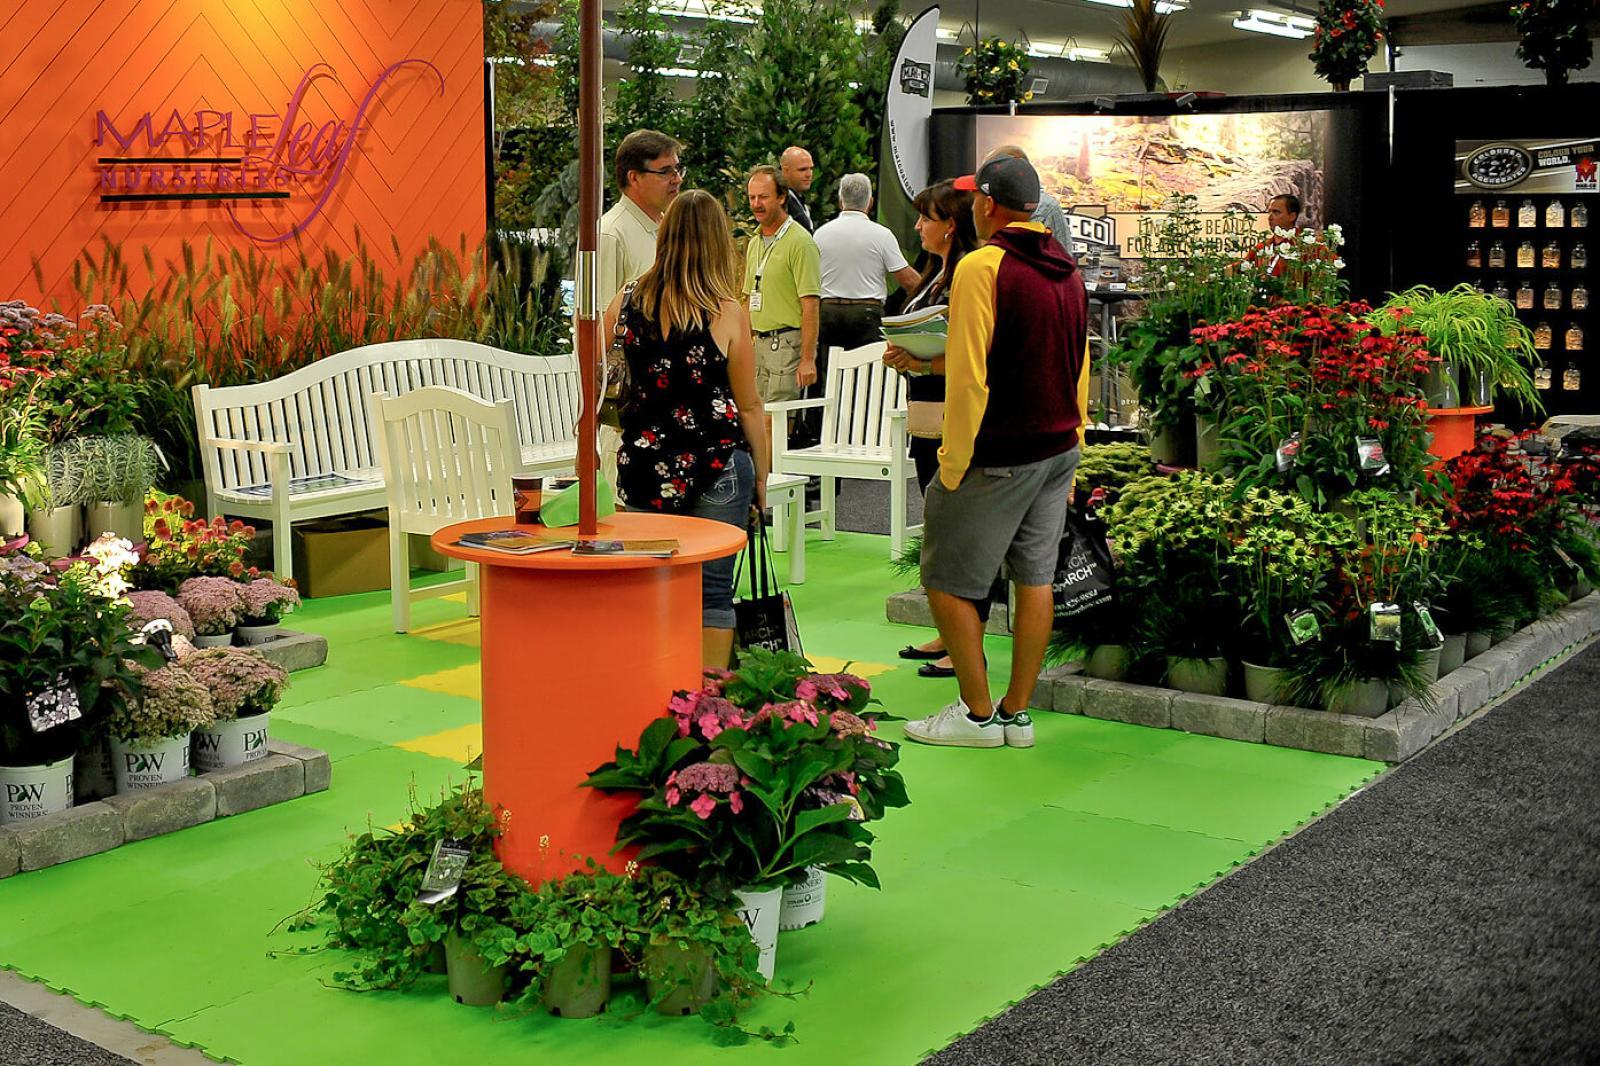 Expo's move to Congress in 2017 will unite all sectors of the landscape profession under one roof.